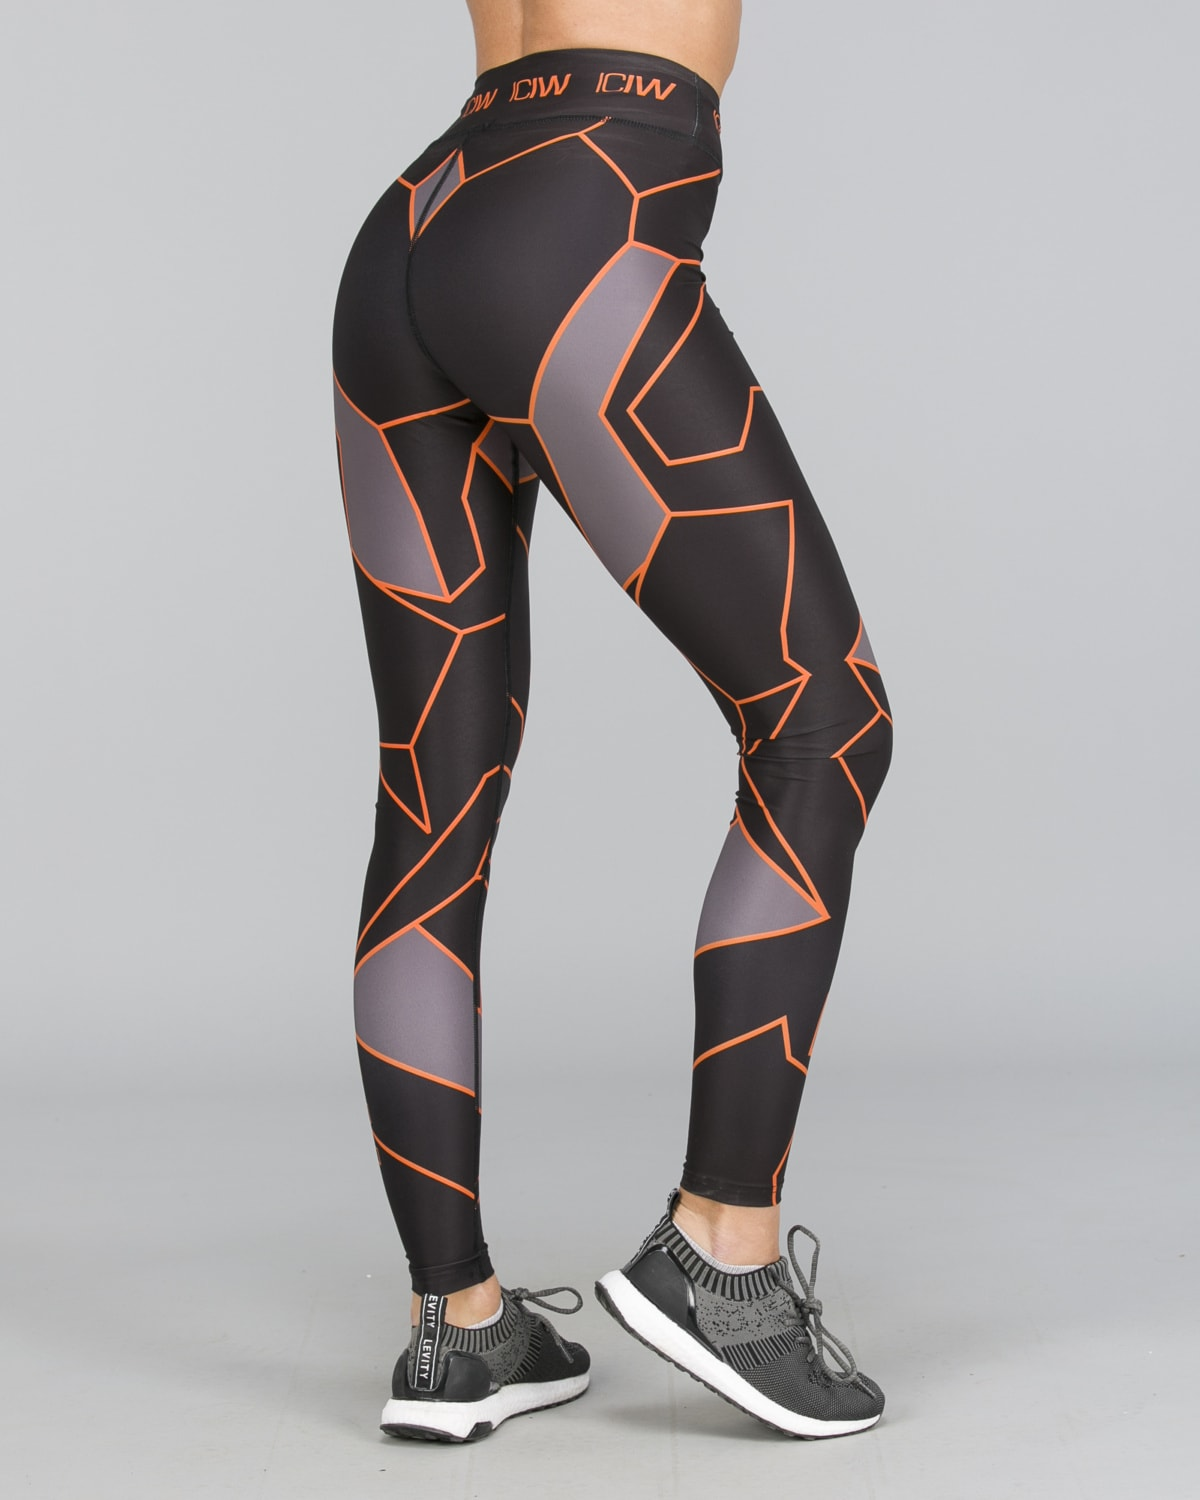 ICANIWILL – Orange Camo Tights d